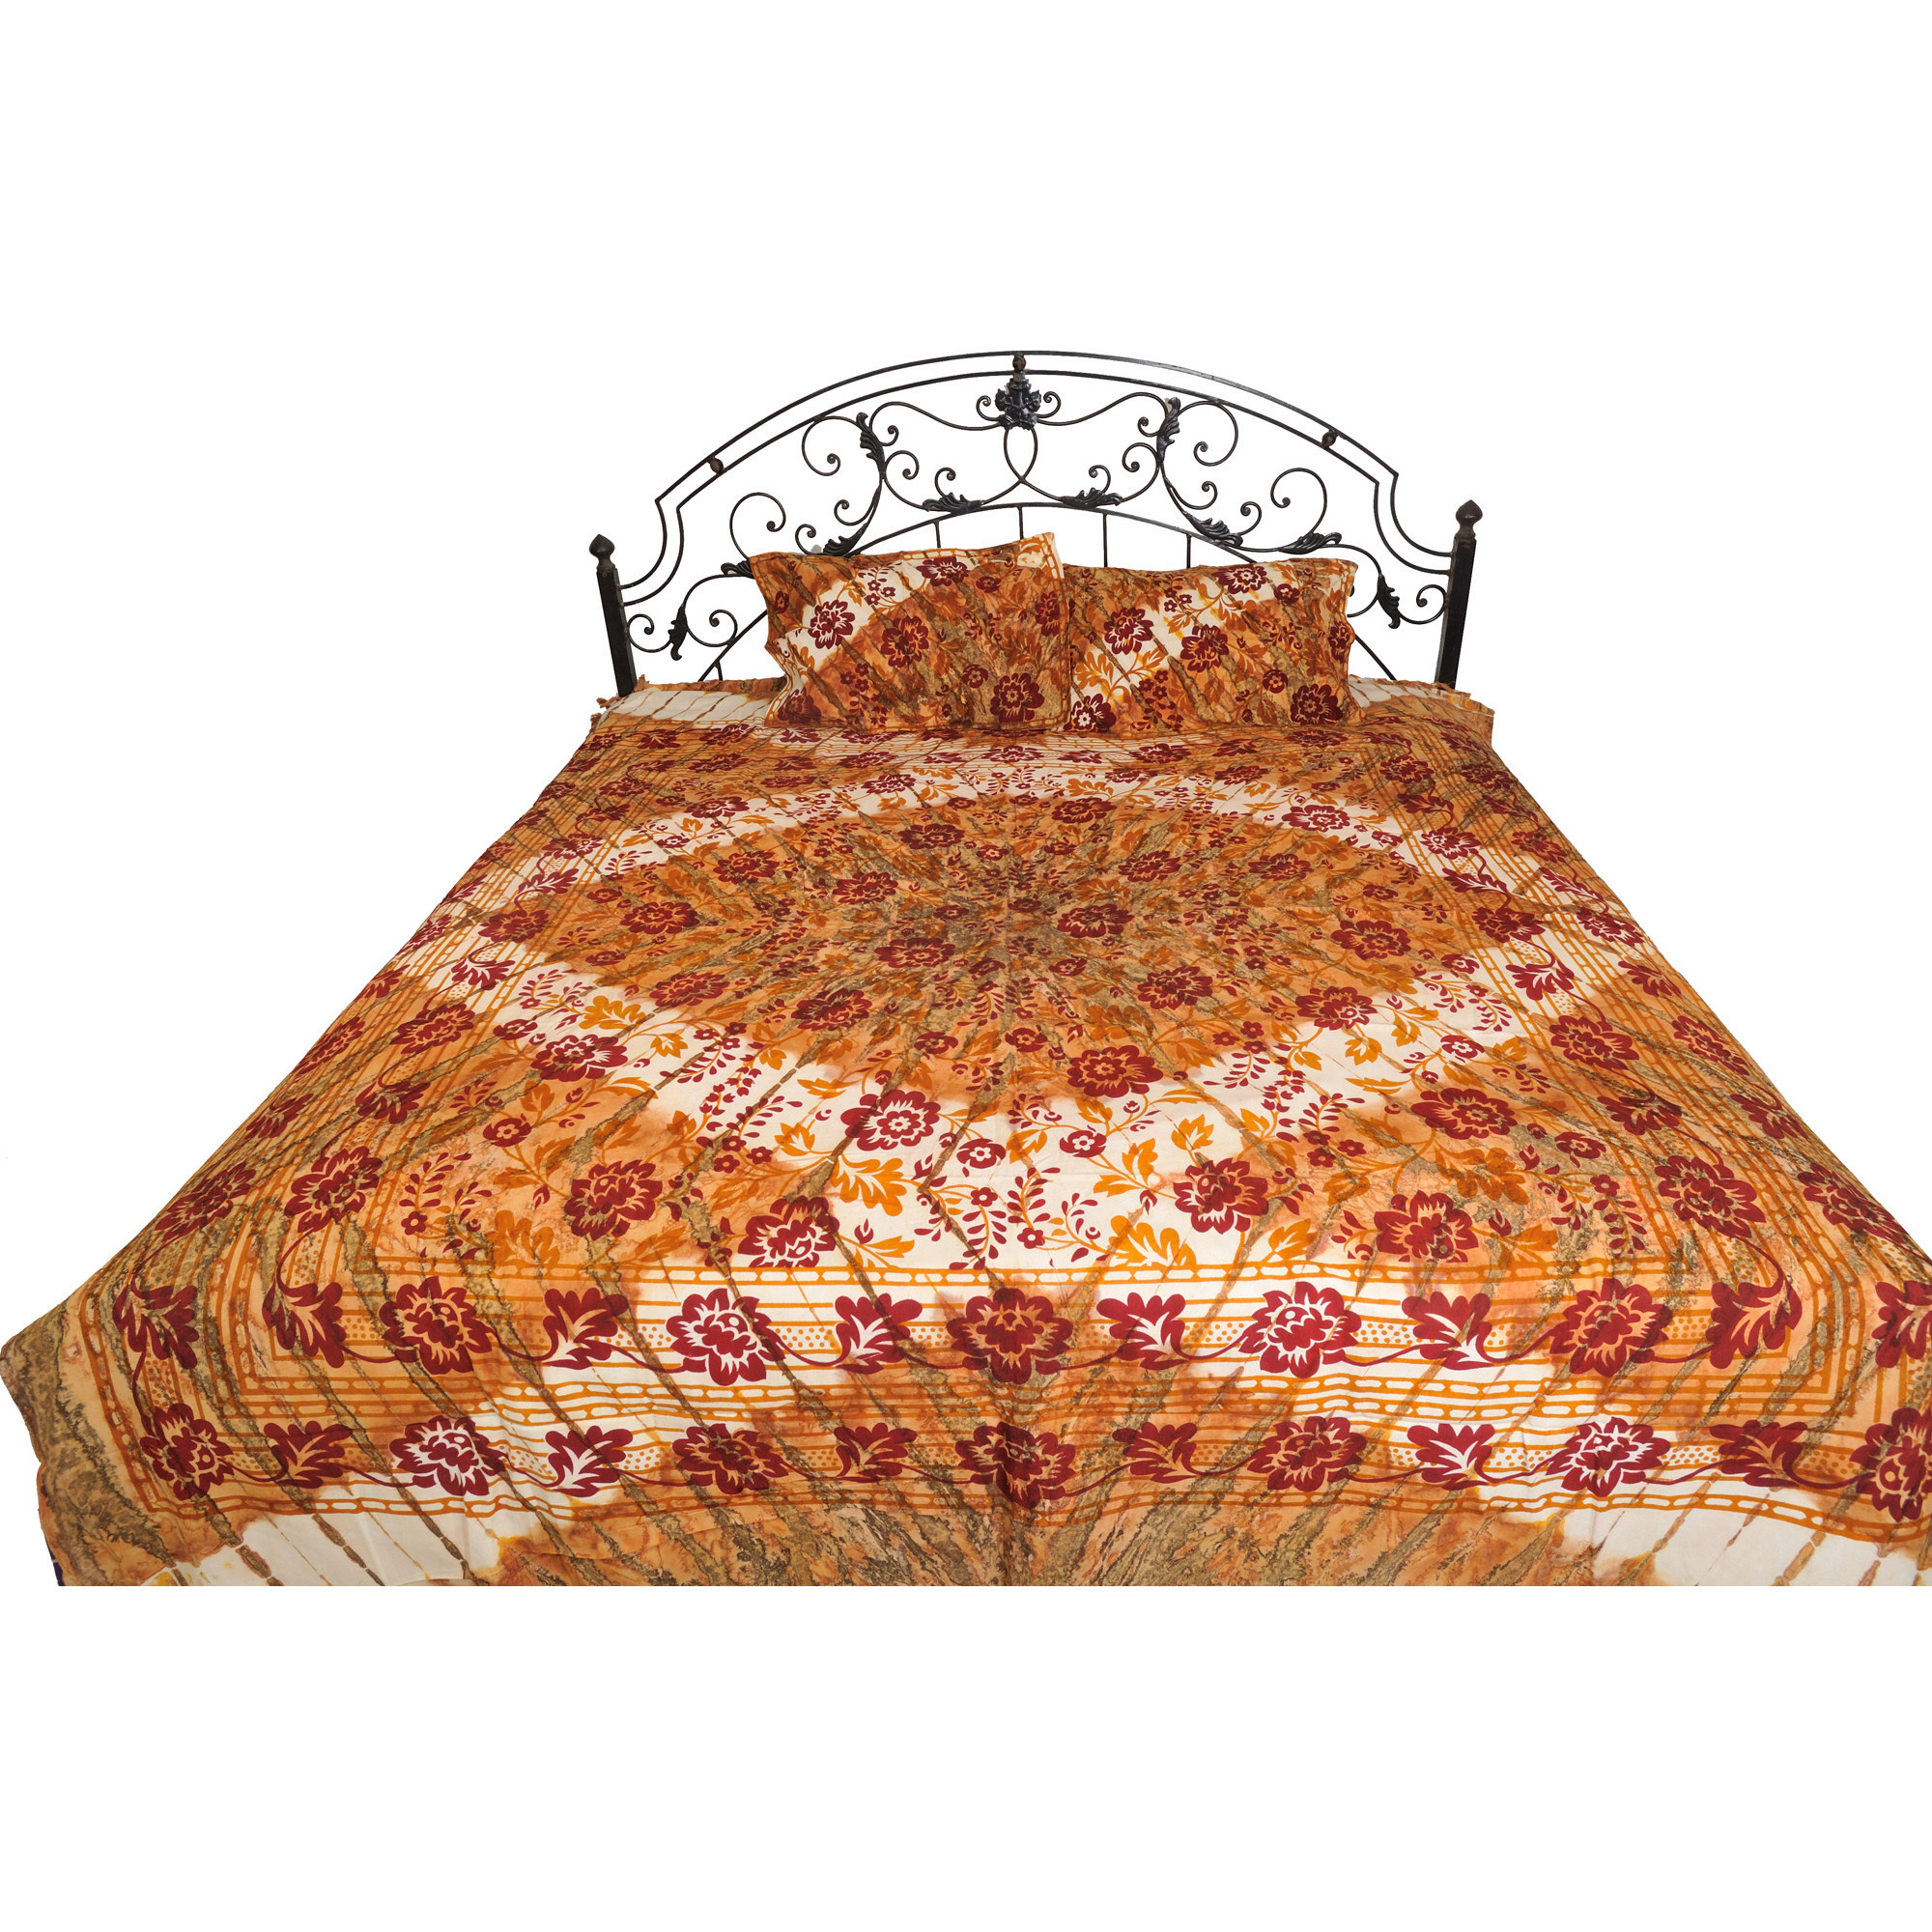 Honey-Yellow Batik-Dyed Bedspread from Pilkhuwa with Printed Flowers